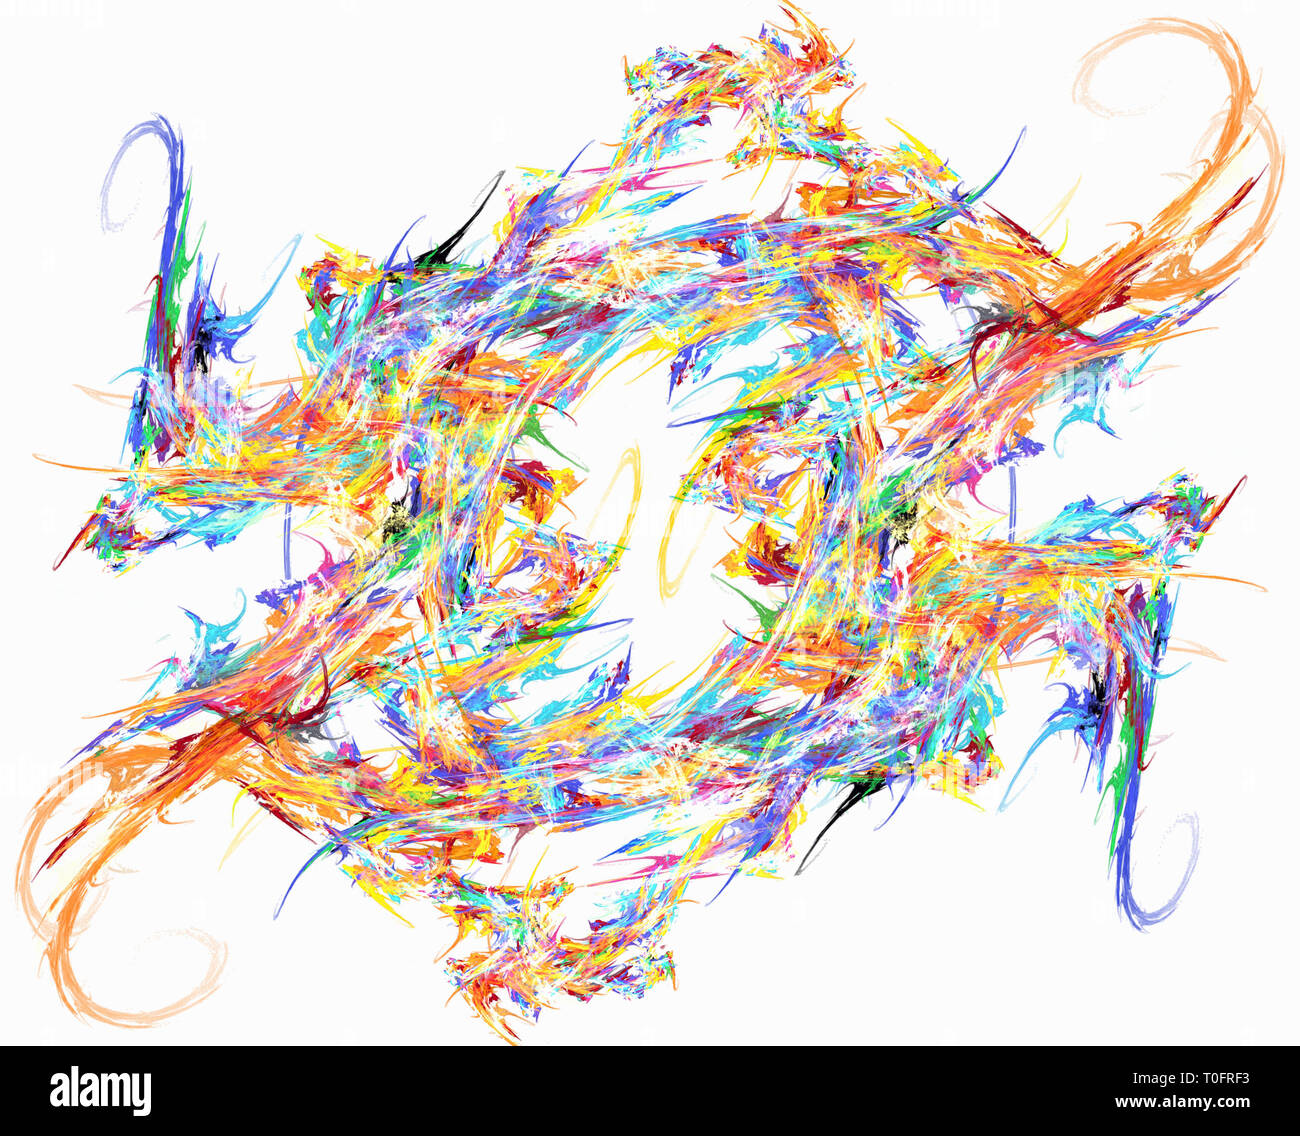 Paint splash flame ring spin color abstract, horizontal, over white - Stock Image